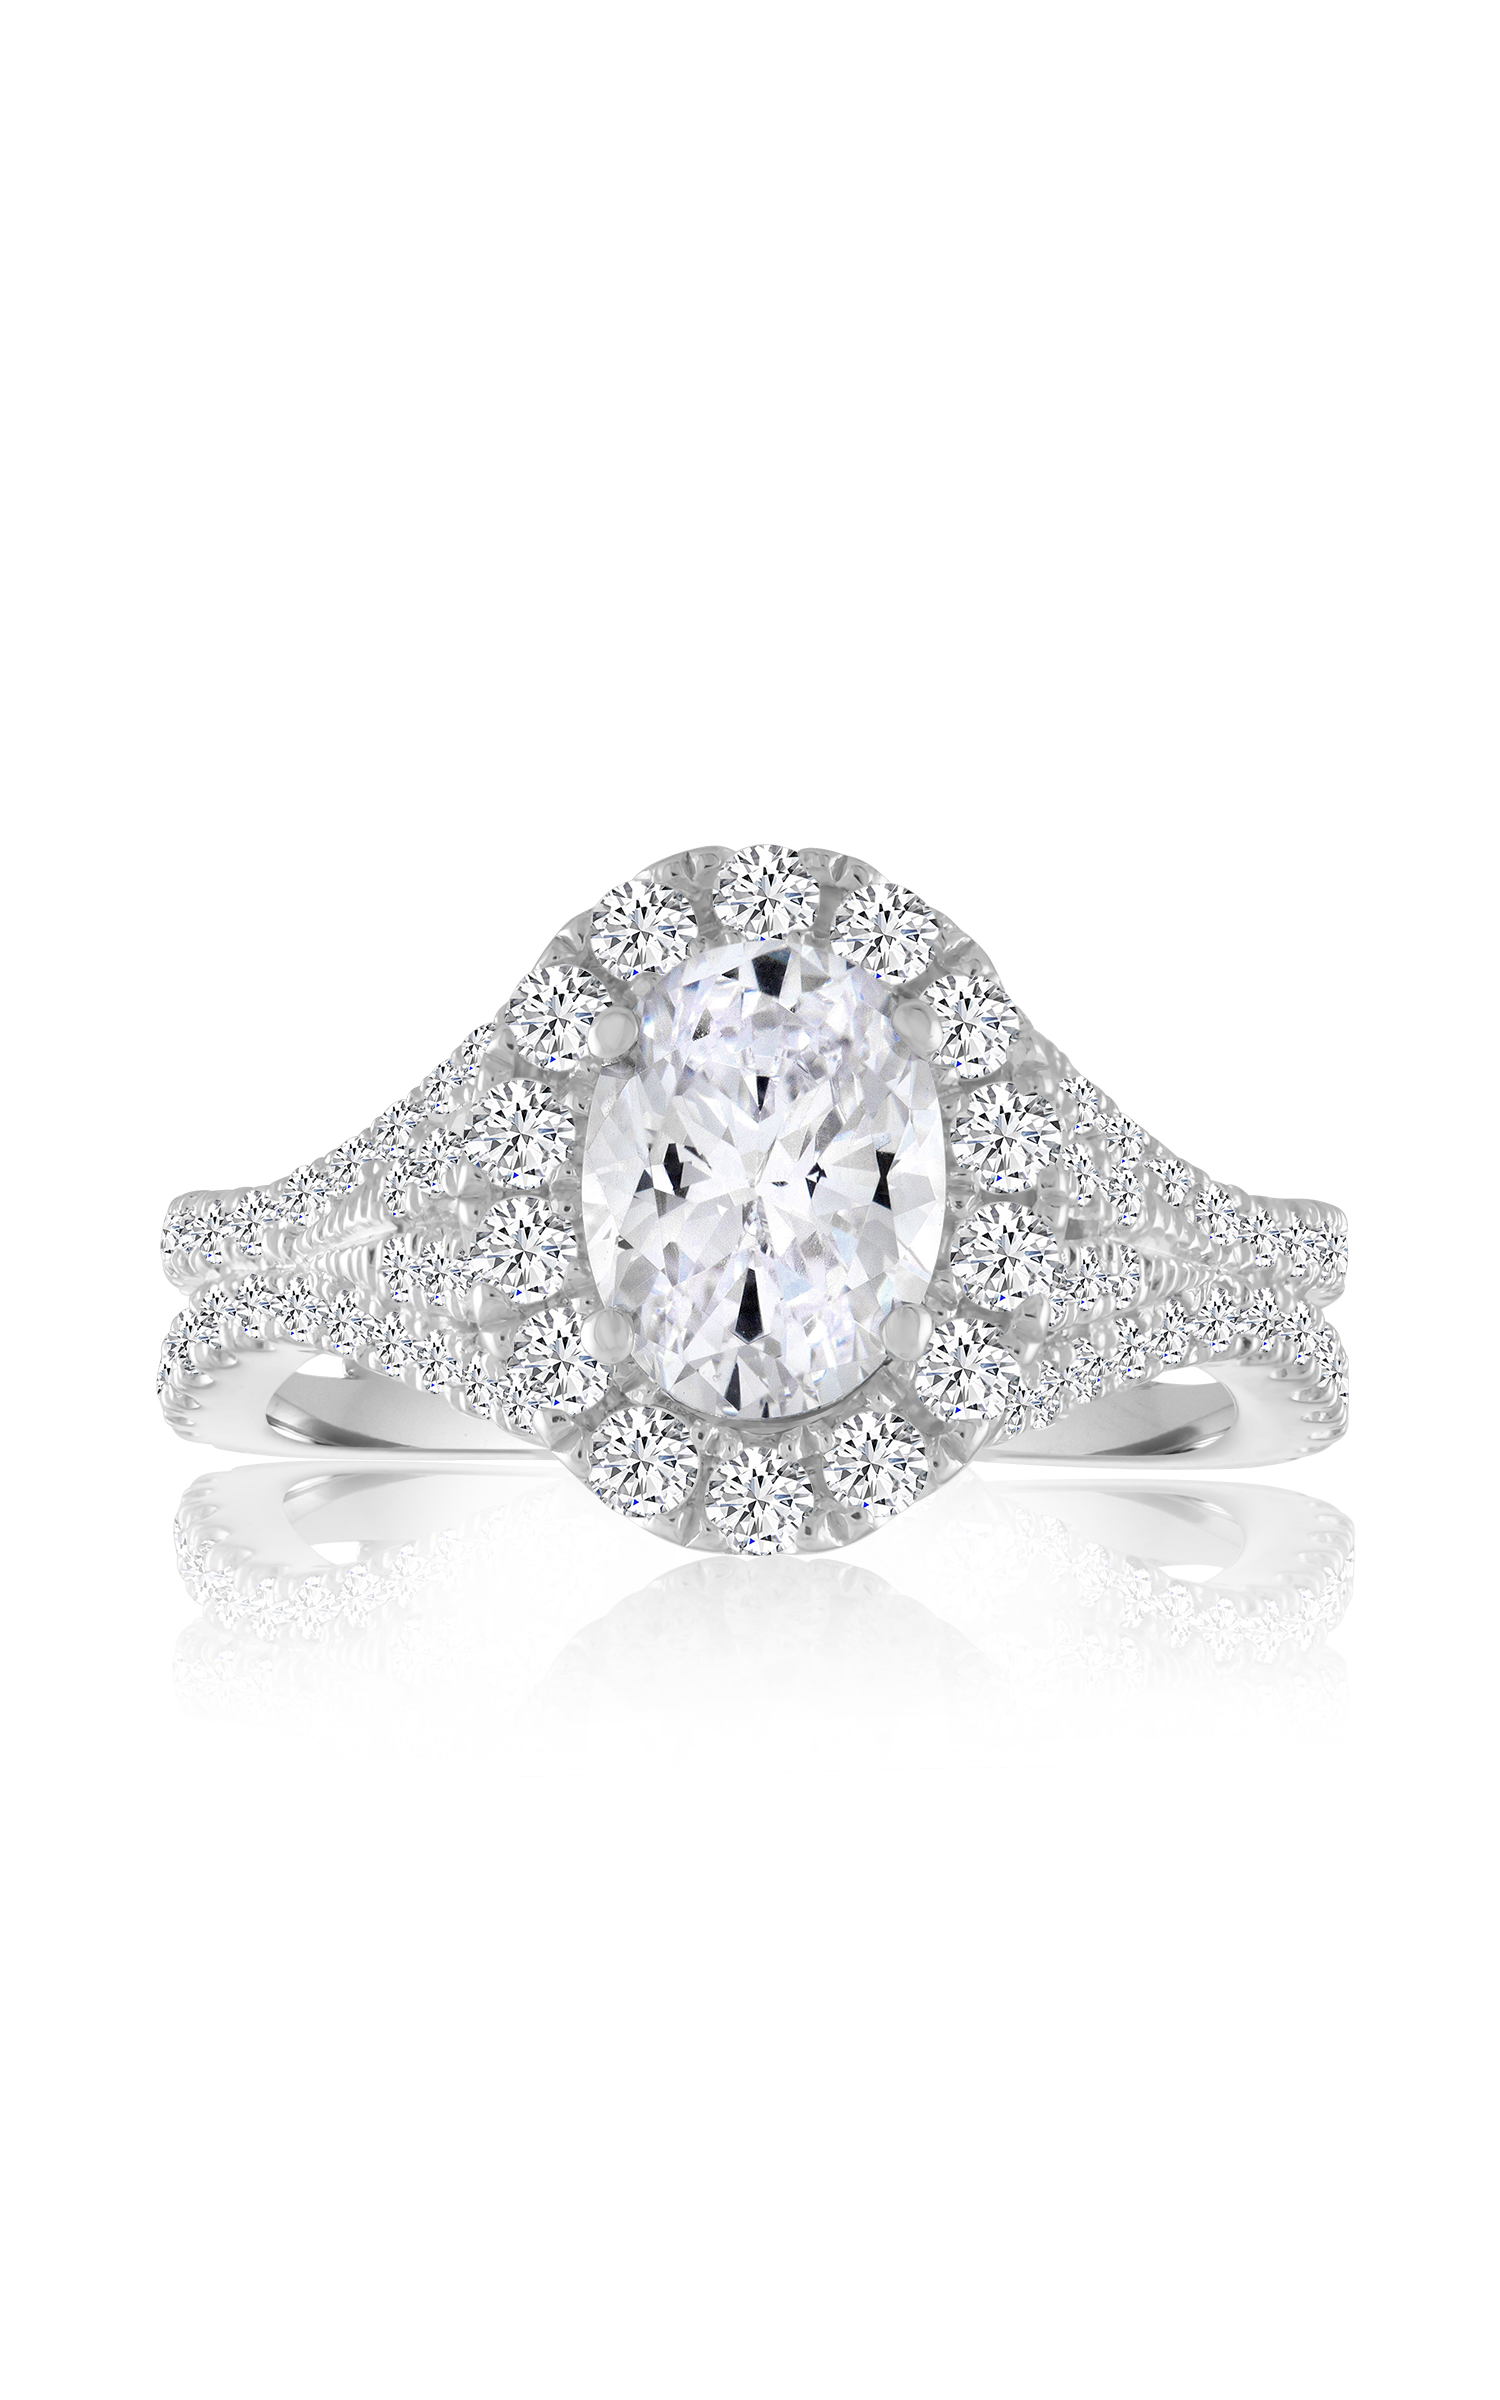 Imagine Bridal Engagement Rings 60102D-1 product image